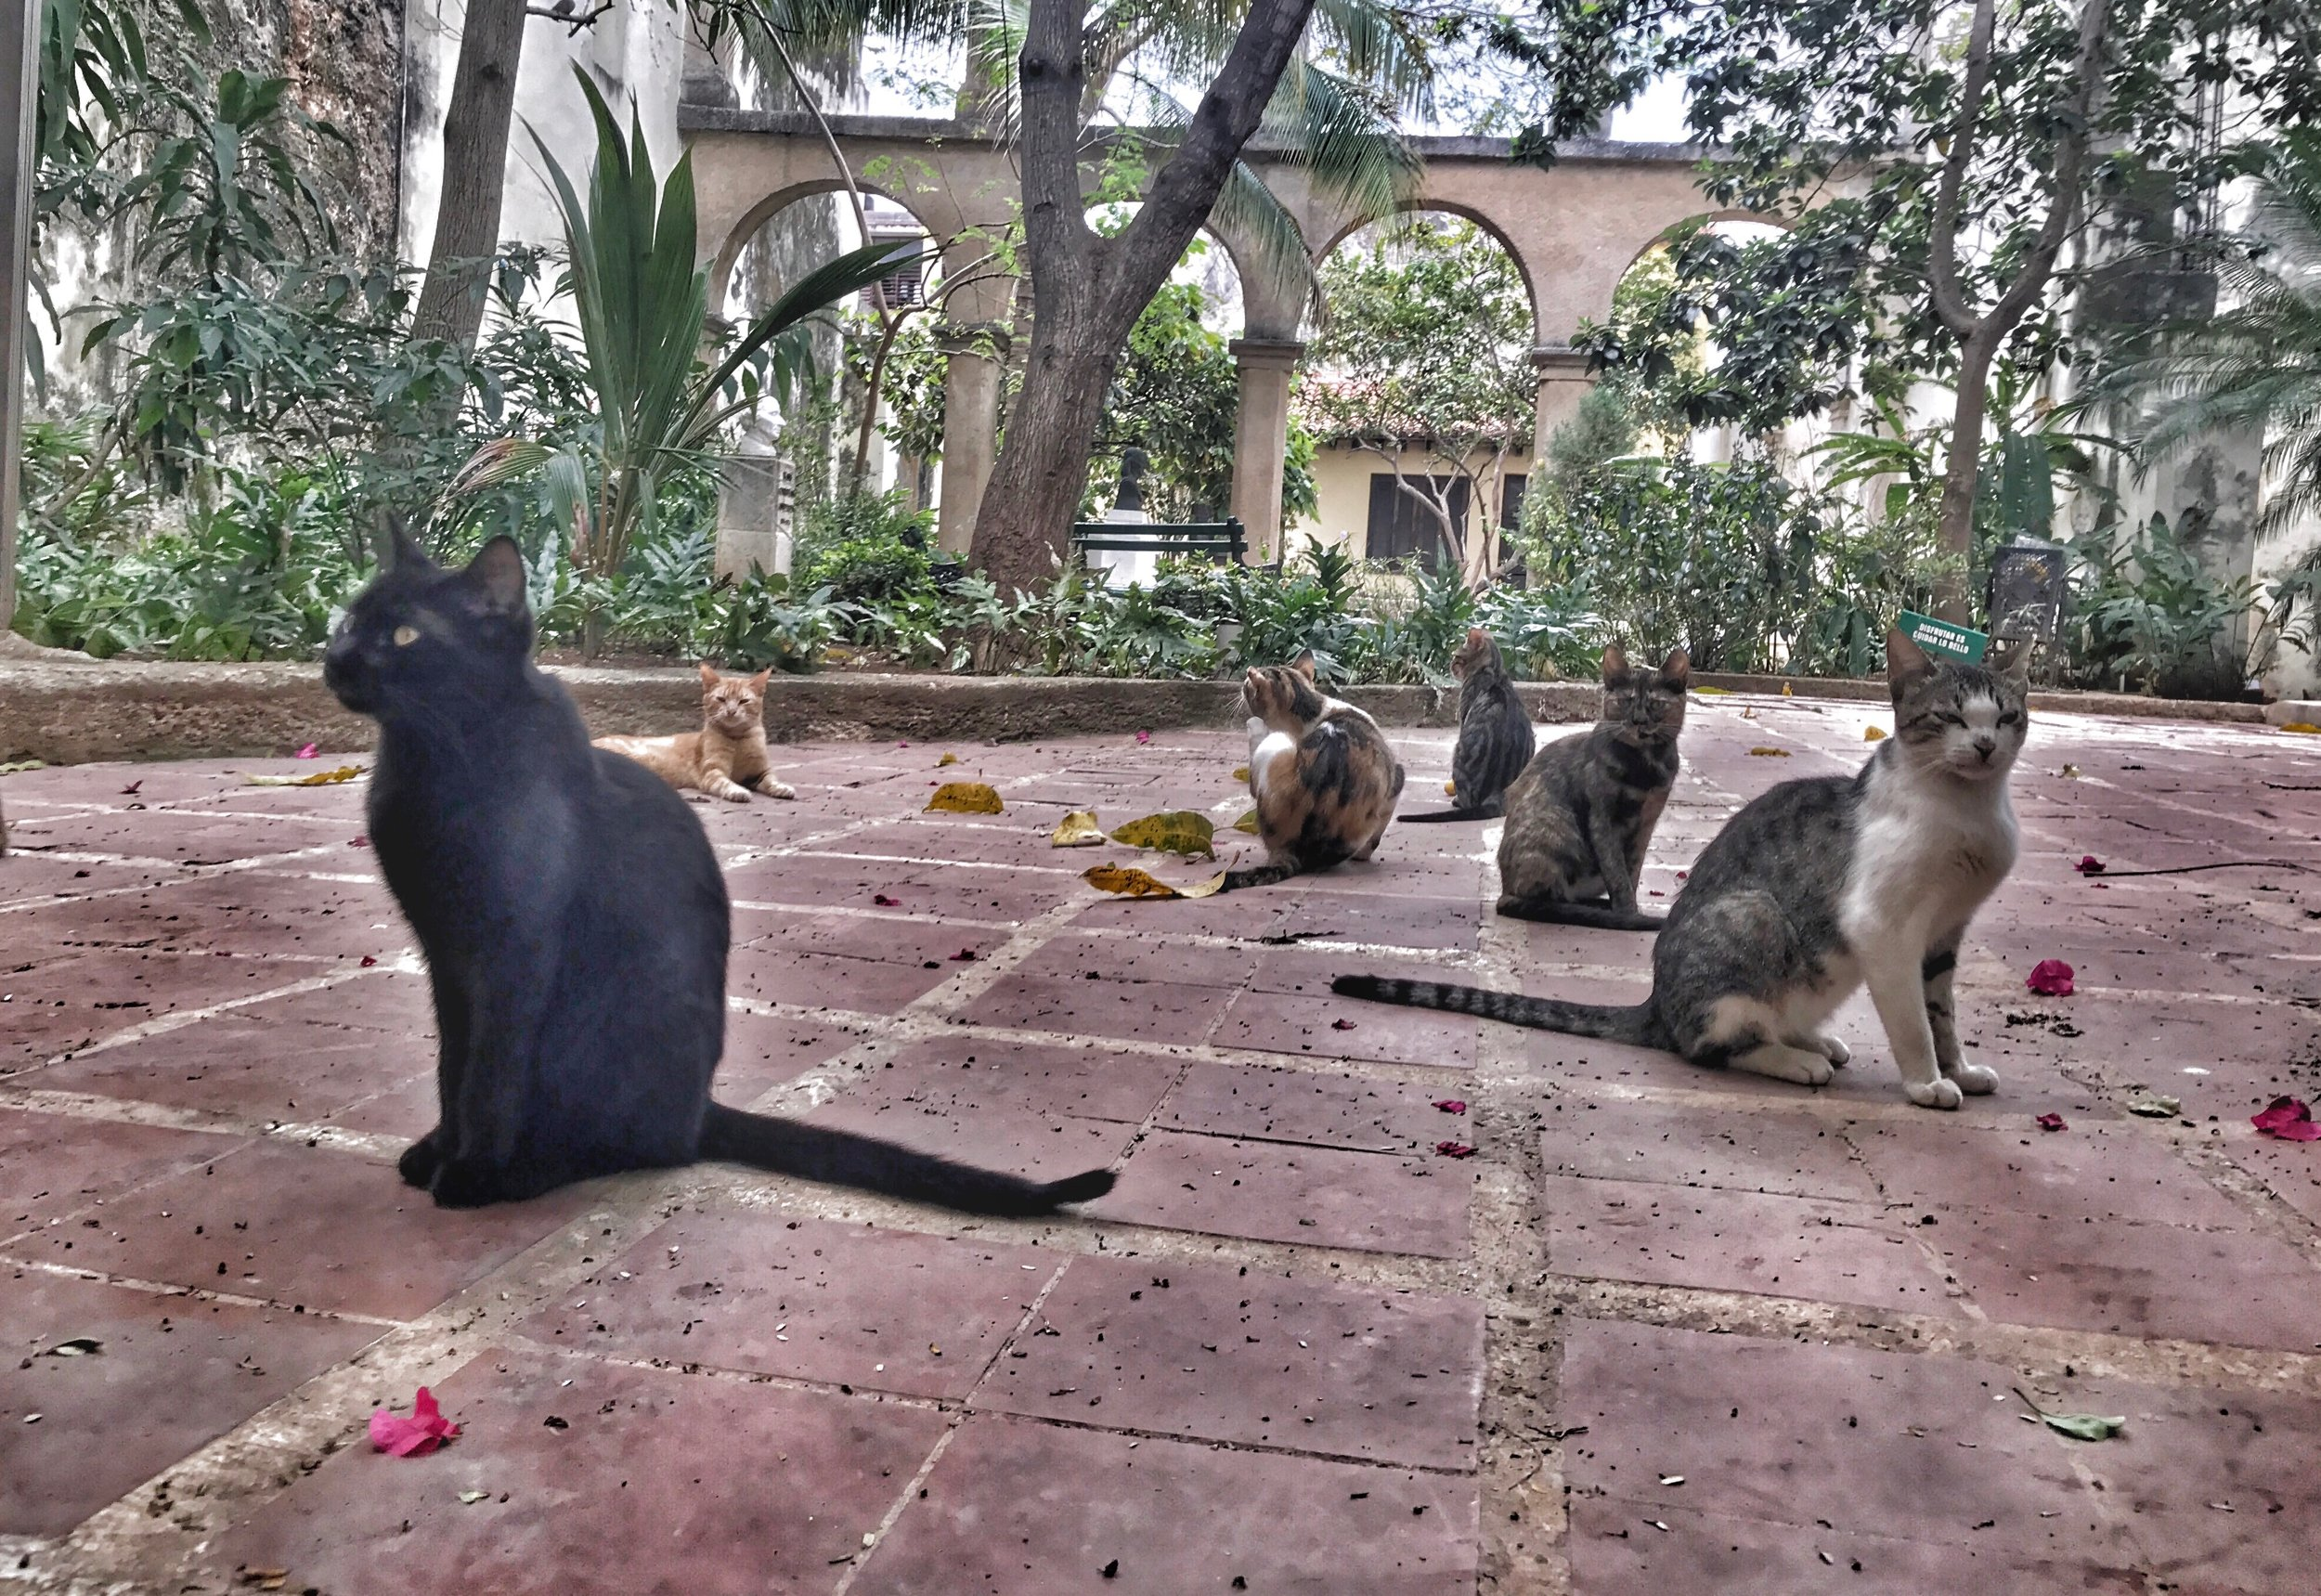 The many feral cats of Havana. These felines looked like they were about to drop the most epic indy album you've ever heard. The cats were active during the day but disappeared at night when the dogs were active.